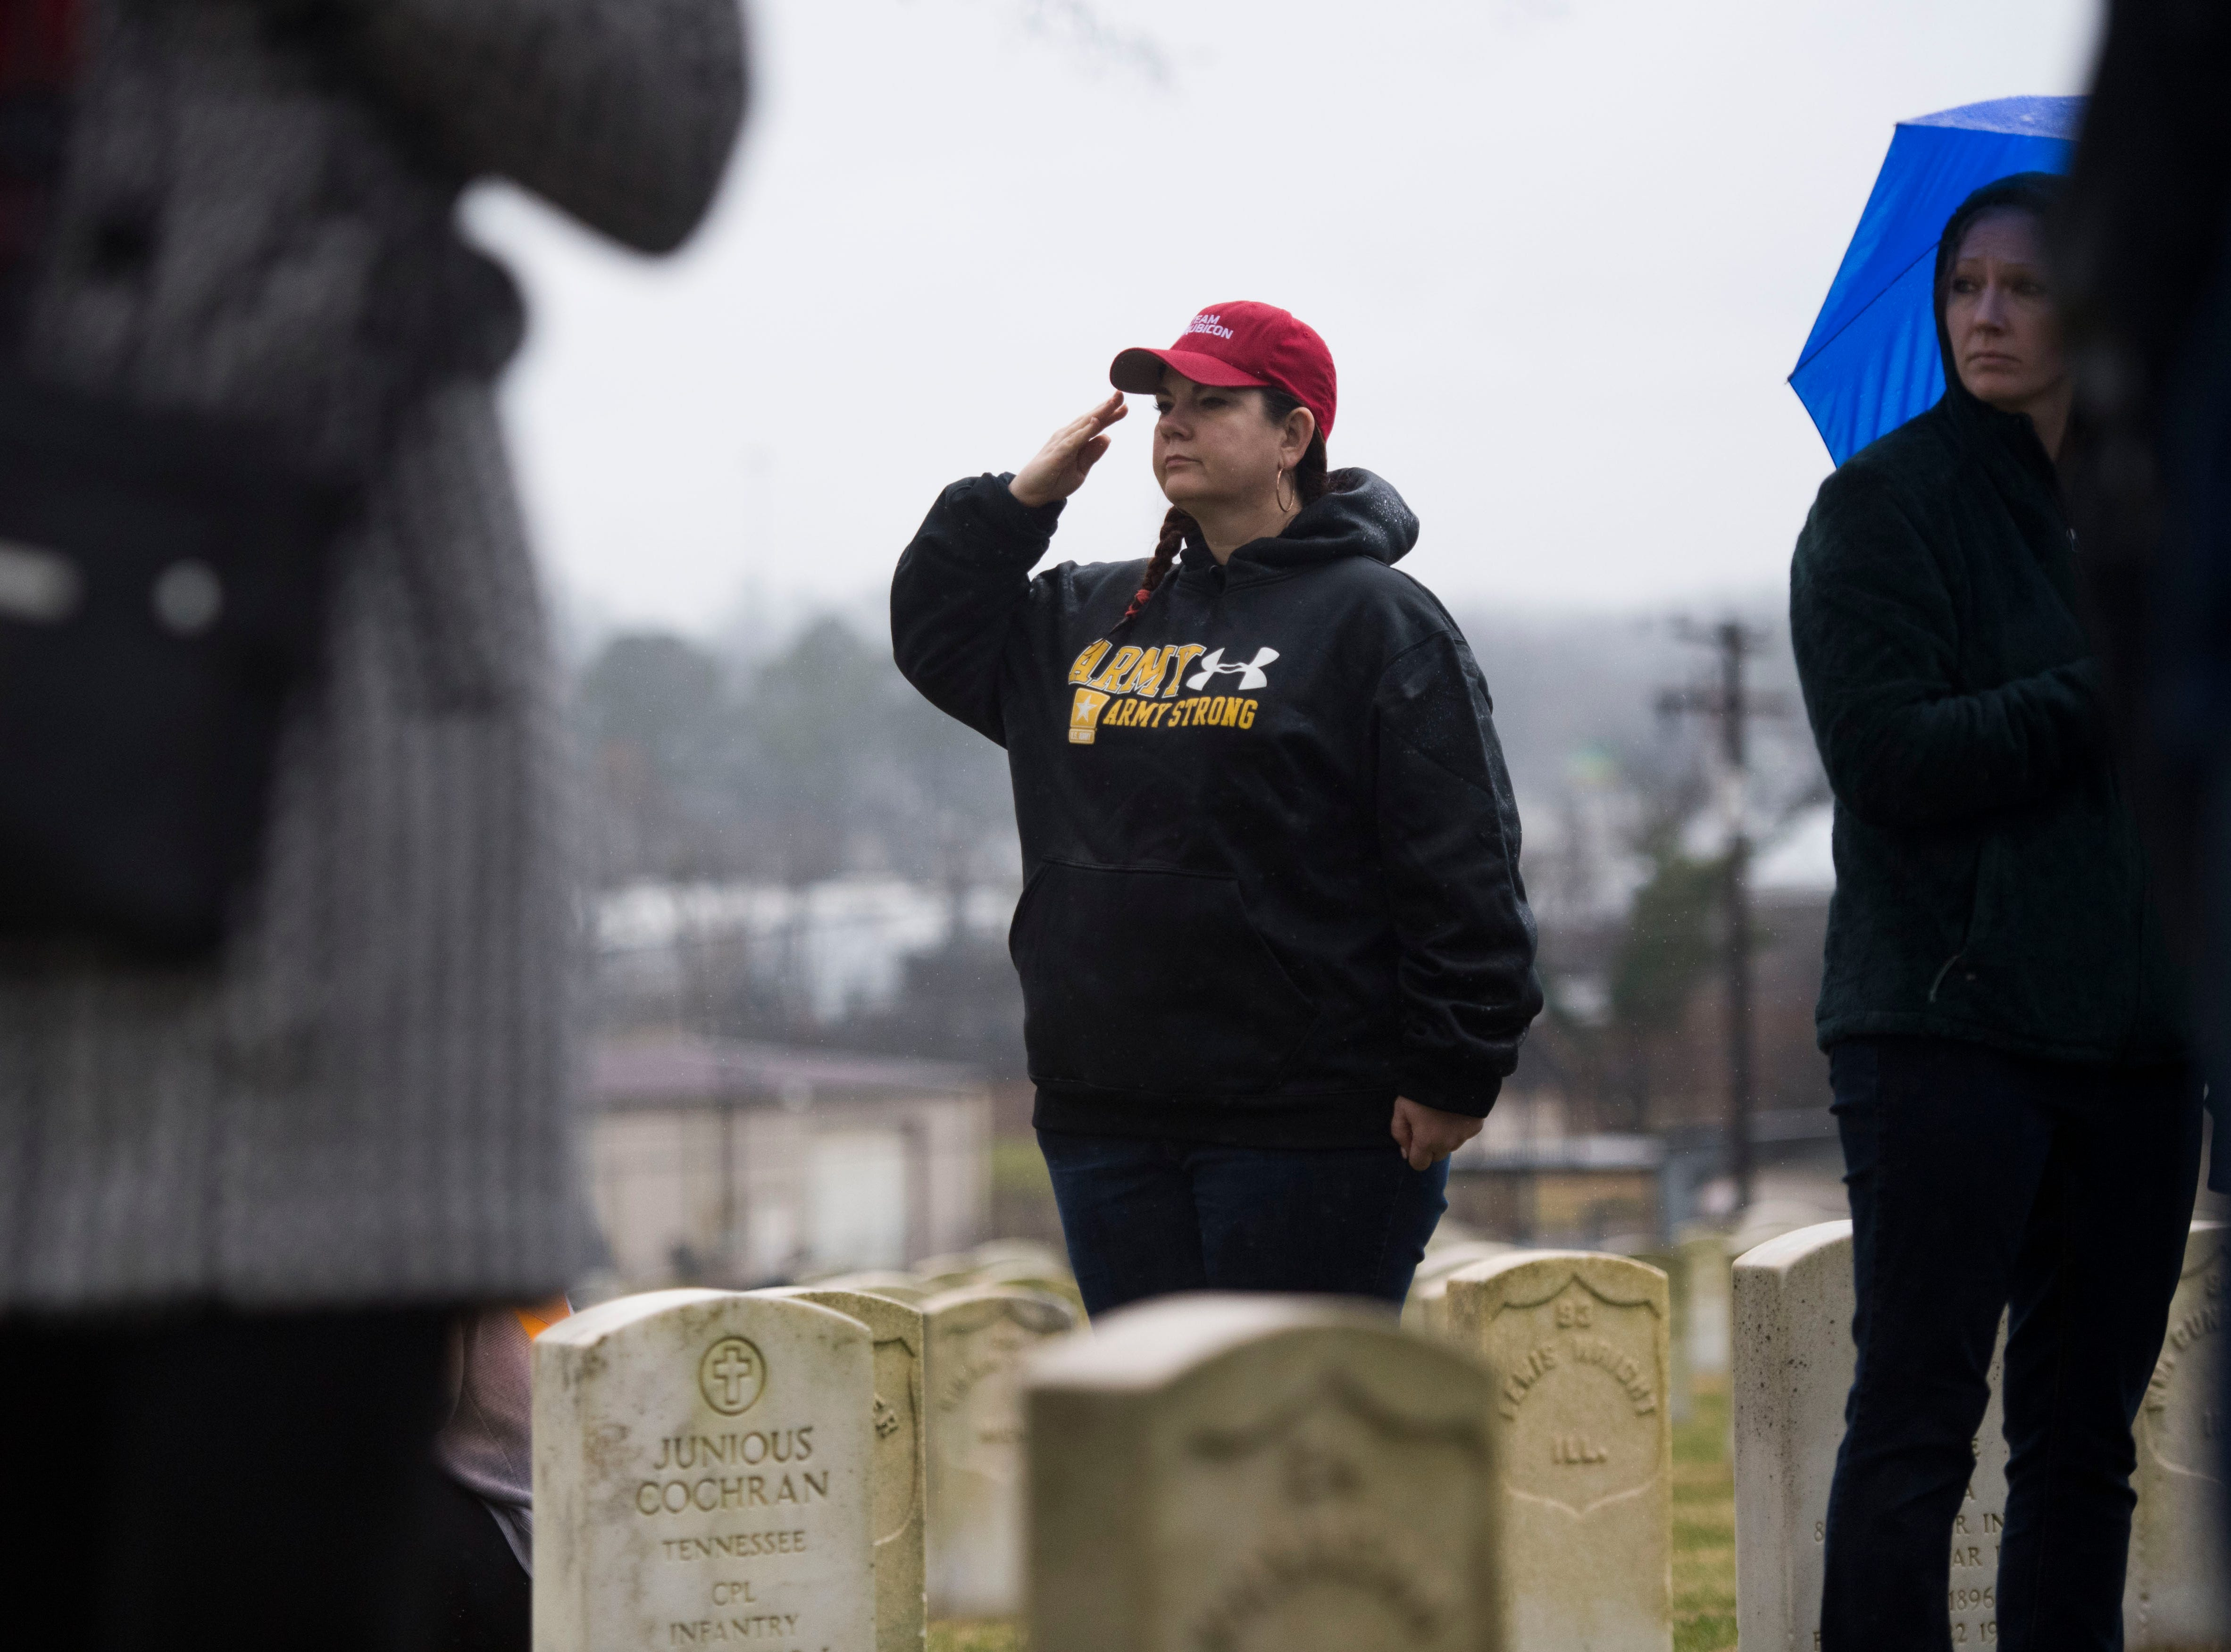 An attendee salutes during a Wreaths Across America ceremony at Knoxville National Cemetery north of downtown Knoxville Saturday, Dec. 15, 2018. Evergreen wreaths were placed on veteran headstones.